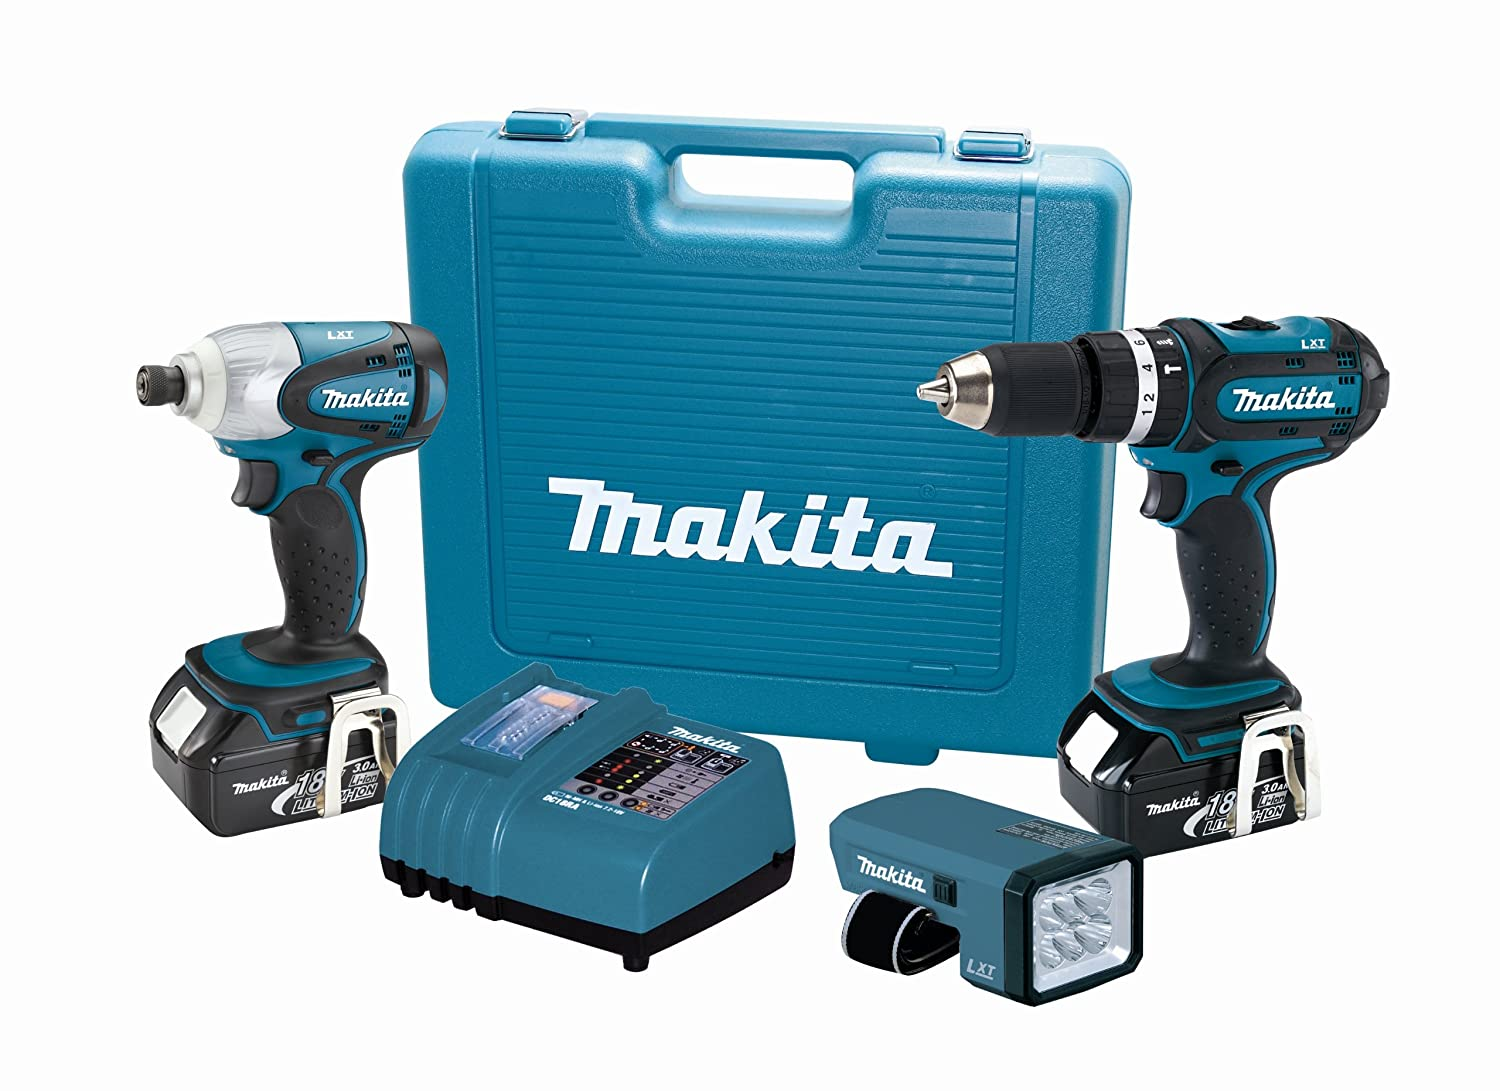 Makita LXT318 18-Volt LXT Lithium-Ion Cordless 3-Piece Combo Kit Discontinued by Manufacturer